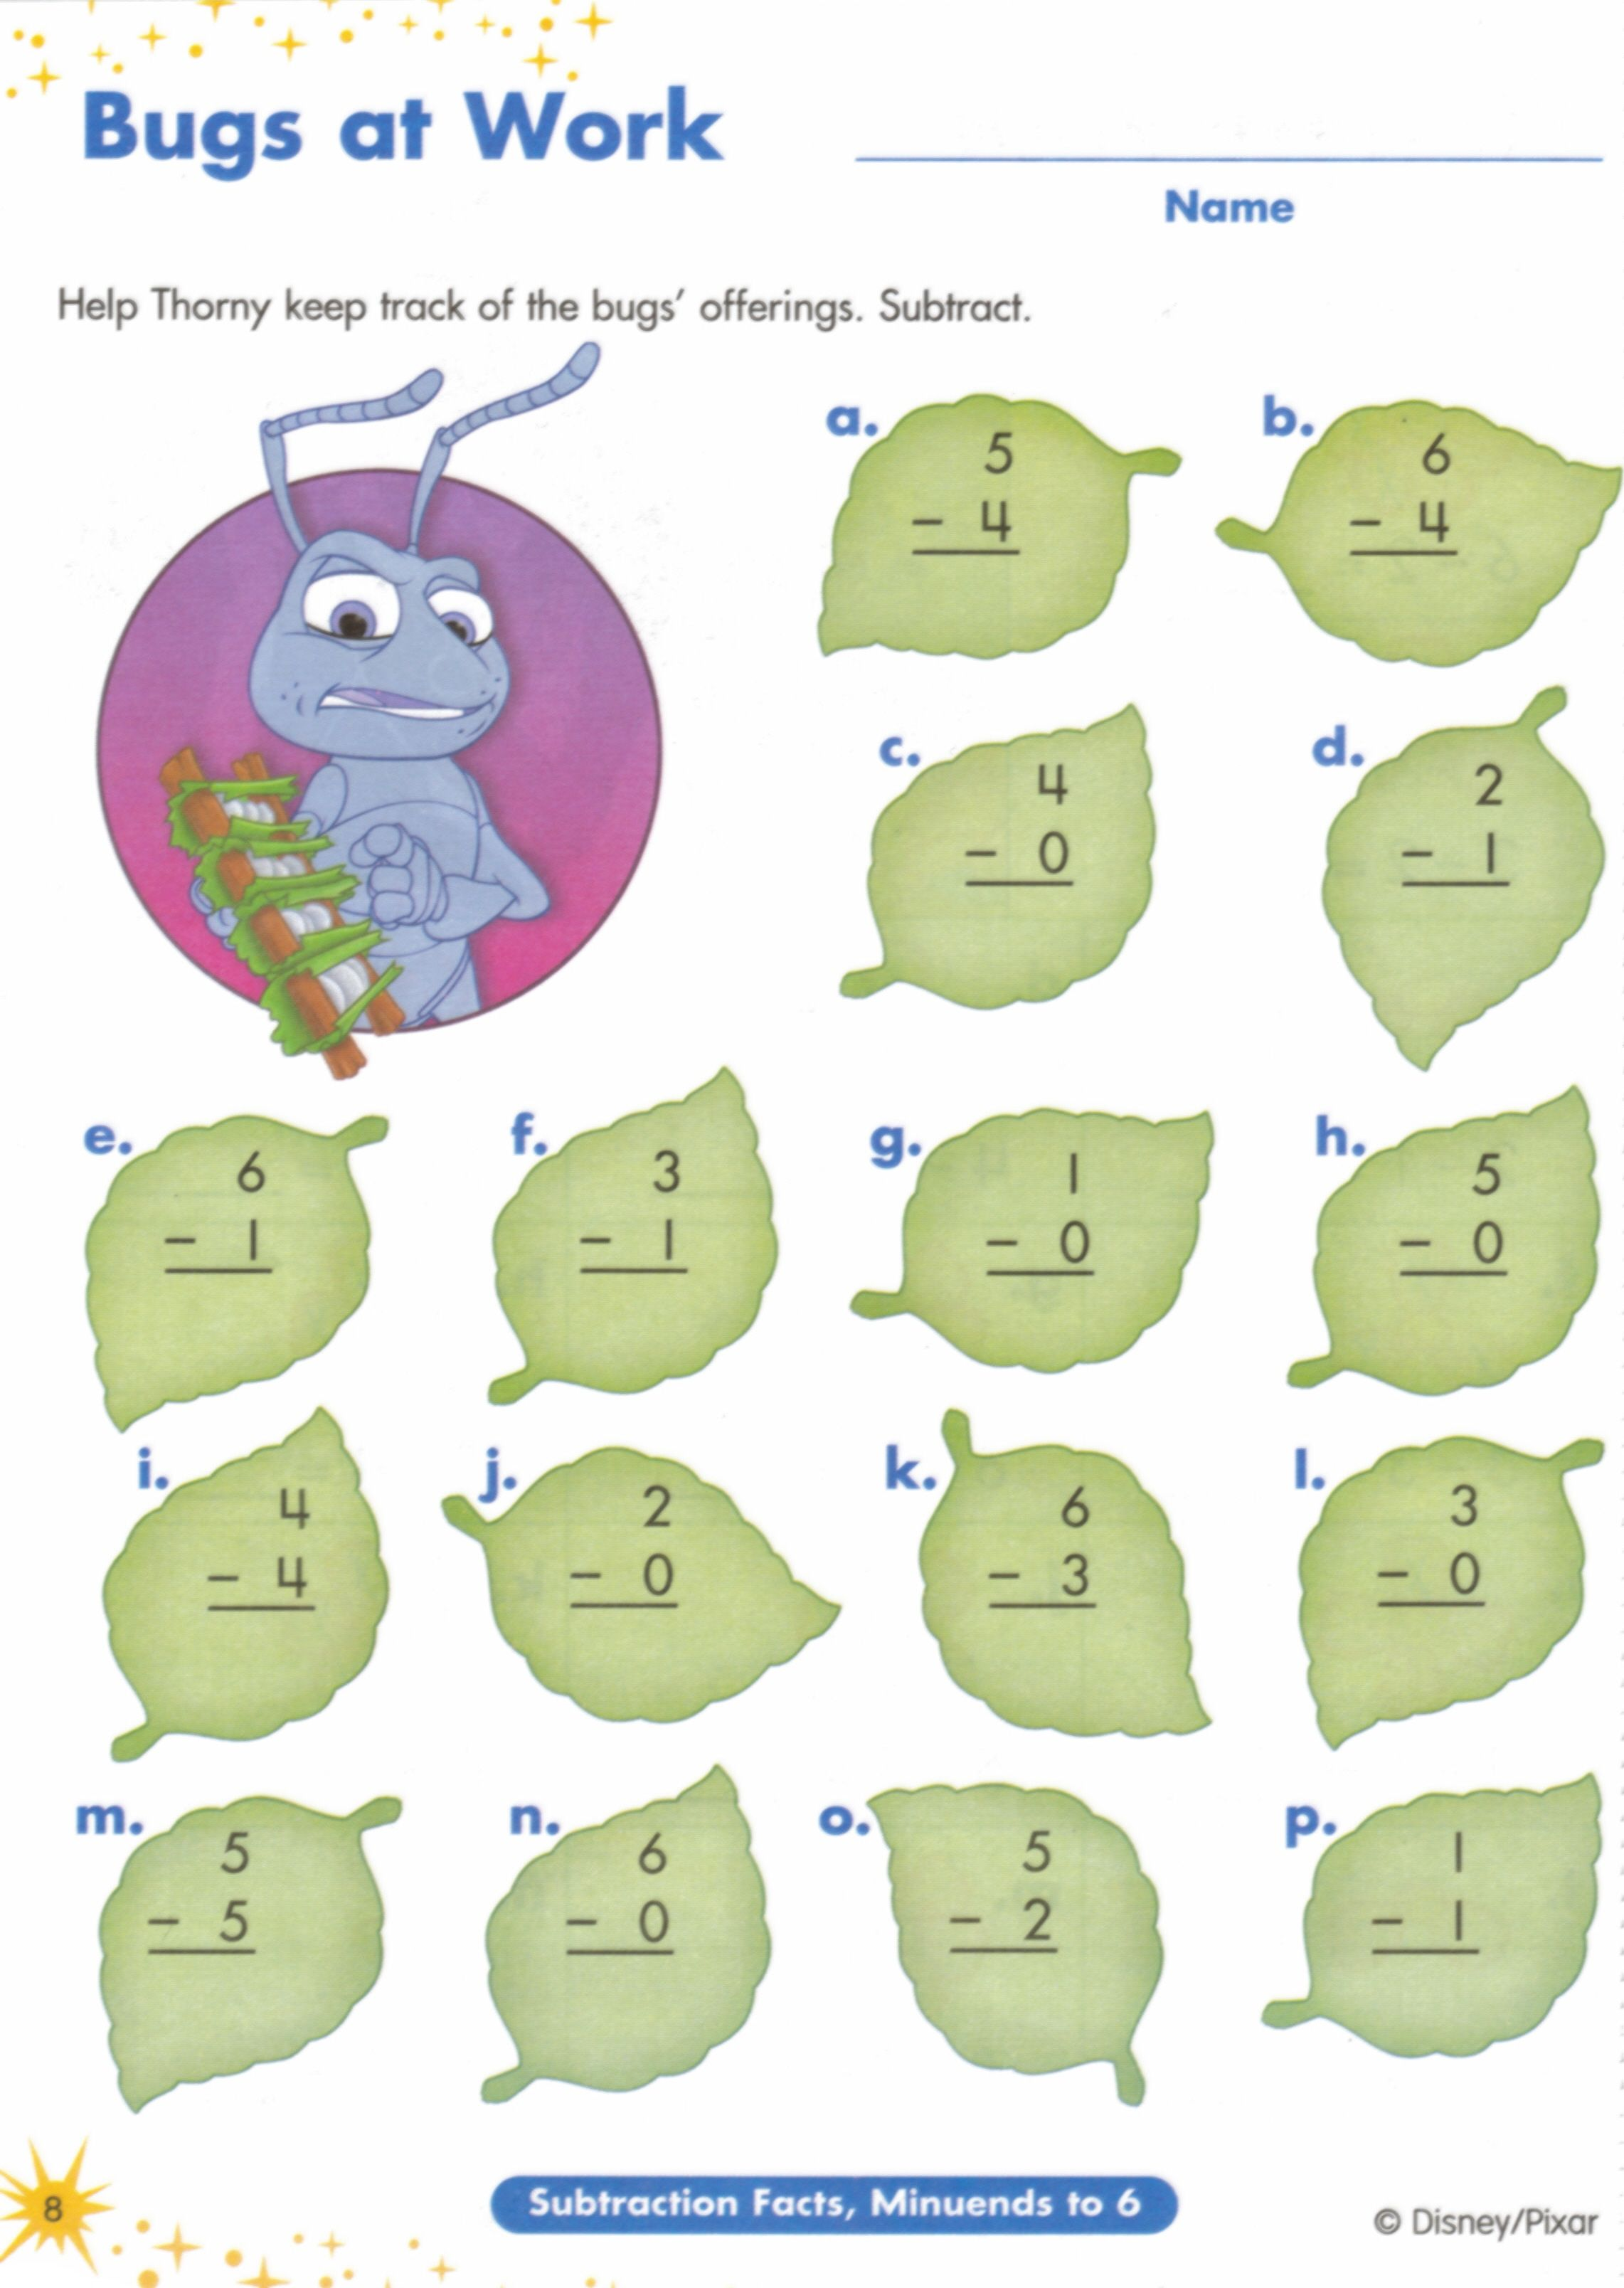 Aldiablosus  Surprising  Images About Worksheets On Pinterest  Fun Facts For Kids  With Interesting  Images About Worksheets On Pinterest  Fun Facts For Kids Earth Day Worksheets And Jungles With Extraordinary Coin Counting Worksheets For Second Grade Also Deductive And Inductive Reasoning Worksheet In Addition Divorce Division Of Assets Worksheet And Short Vowel Worksheets For Nd Grade As Well As Students Worksheets Additionally Solving Equations Worksheets Th Grade From Pinterestcom With Aldiablosus  Interesting  Images About Worksheets On Pinterest  Fun Facts For Kids  With Extraordinary  Images About Worksheets On Pinterest  Fun Facts For Kids Earth Day Worksheets And Jungles And Surprising Coin Counting Worksheets For Second Grade Also Deductive And Inductive Reasoning Worksheet In Addition Divorce Division Of Assets Worksheet From Pinterestcom